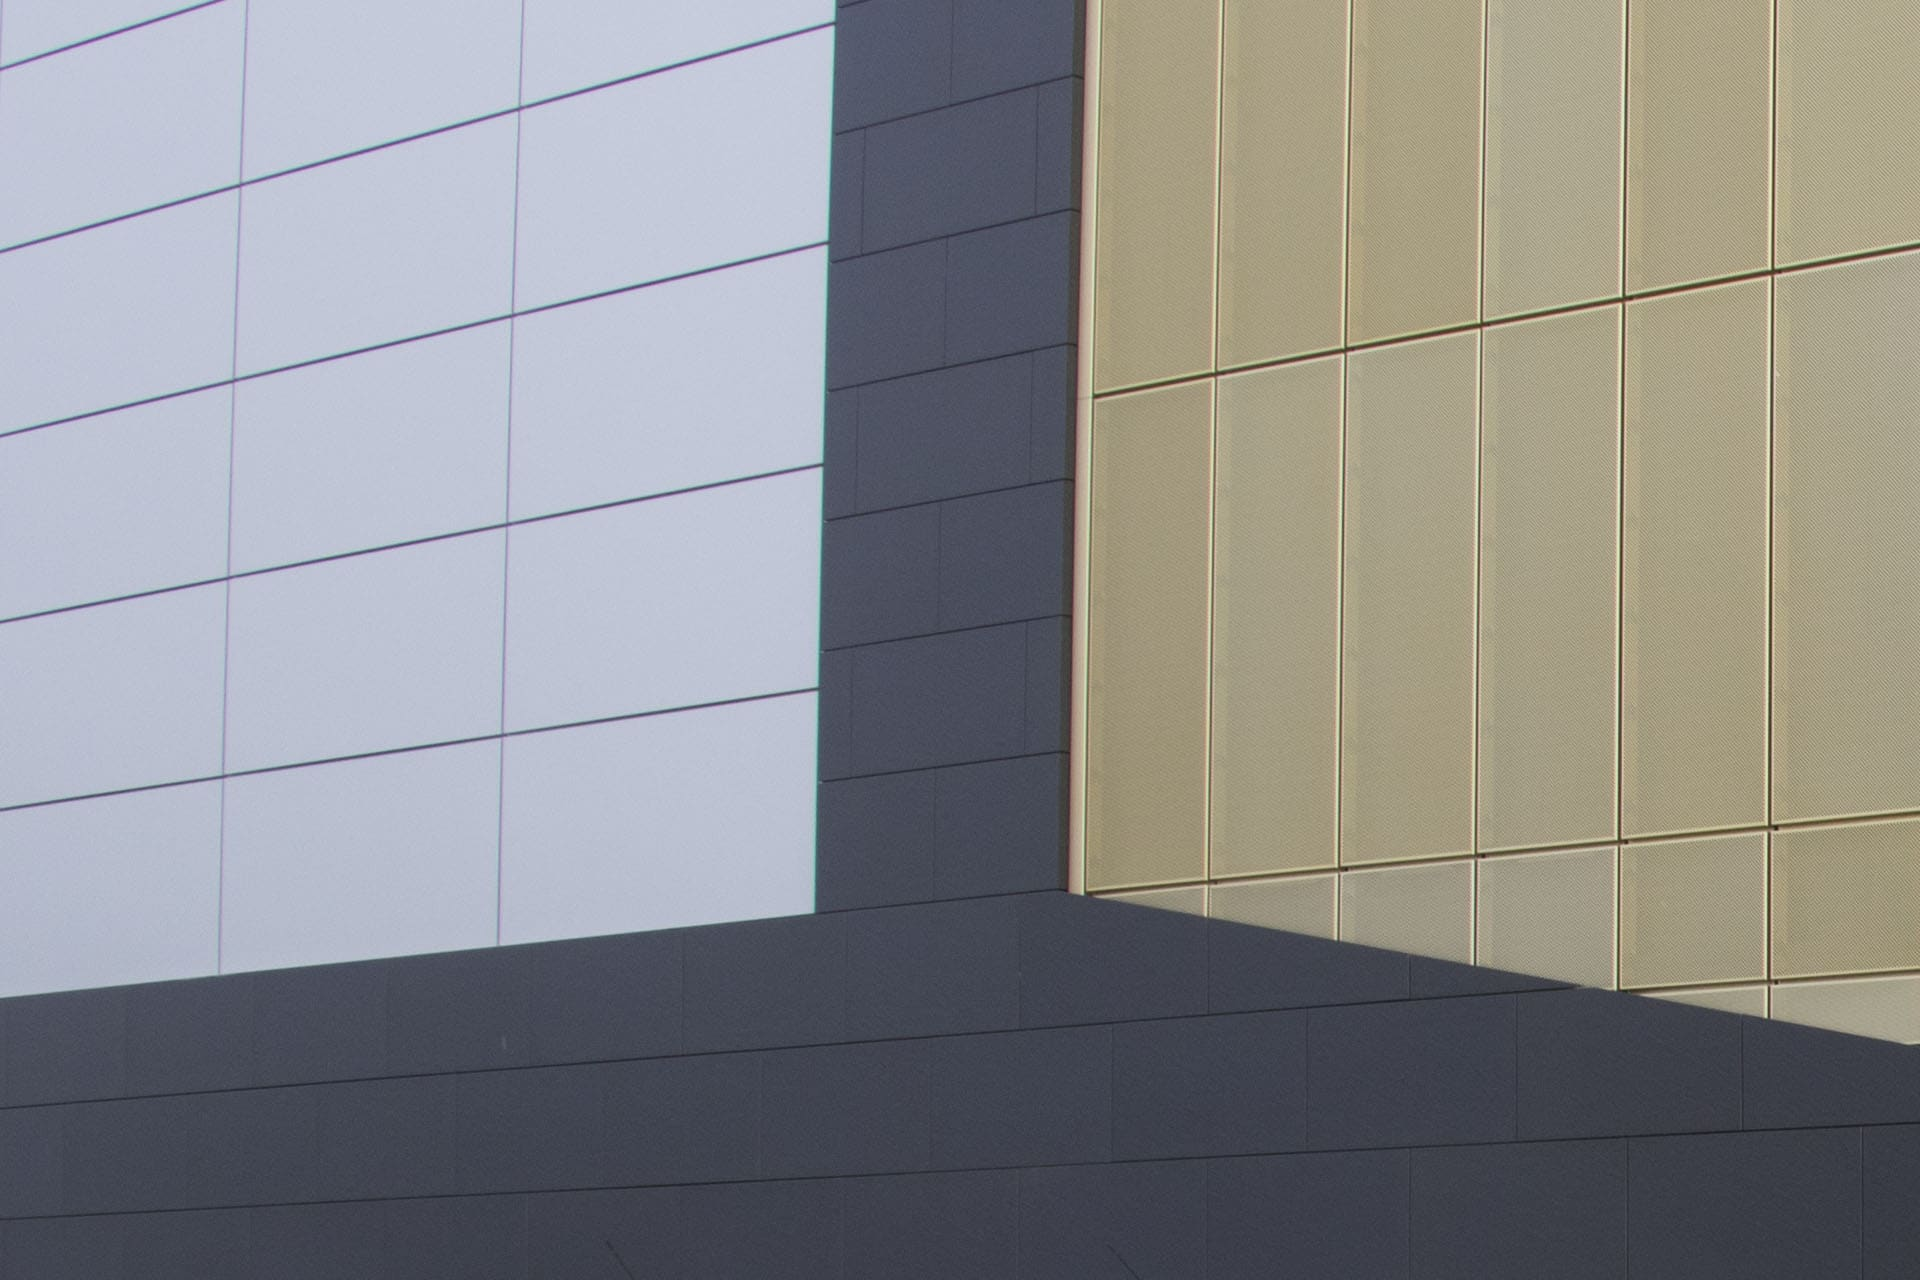 White Rose Shopping Centre Leeds - Rainscreen Panels